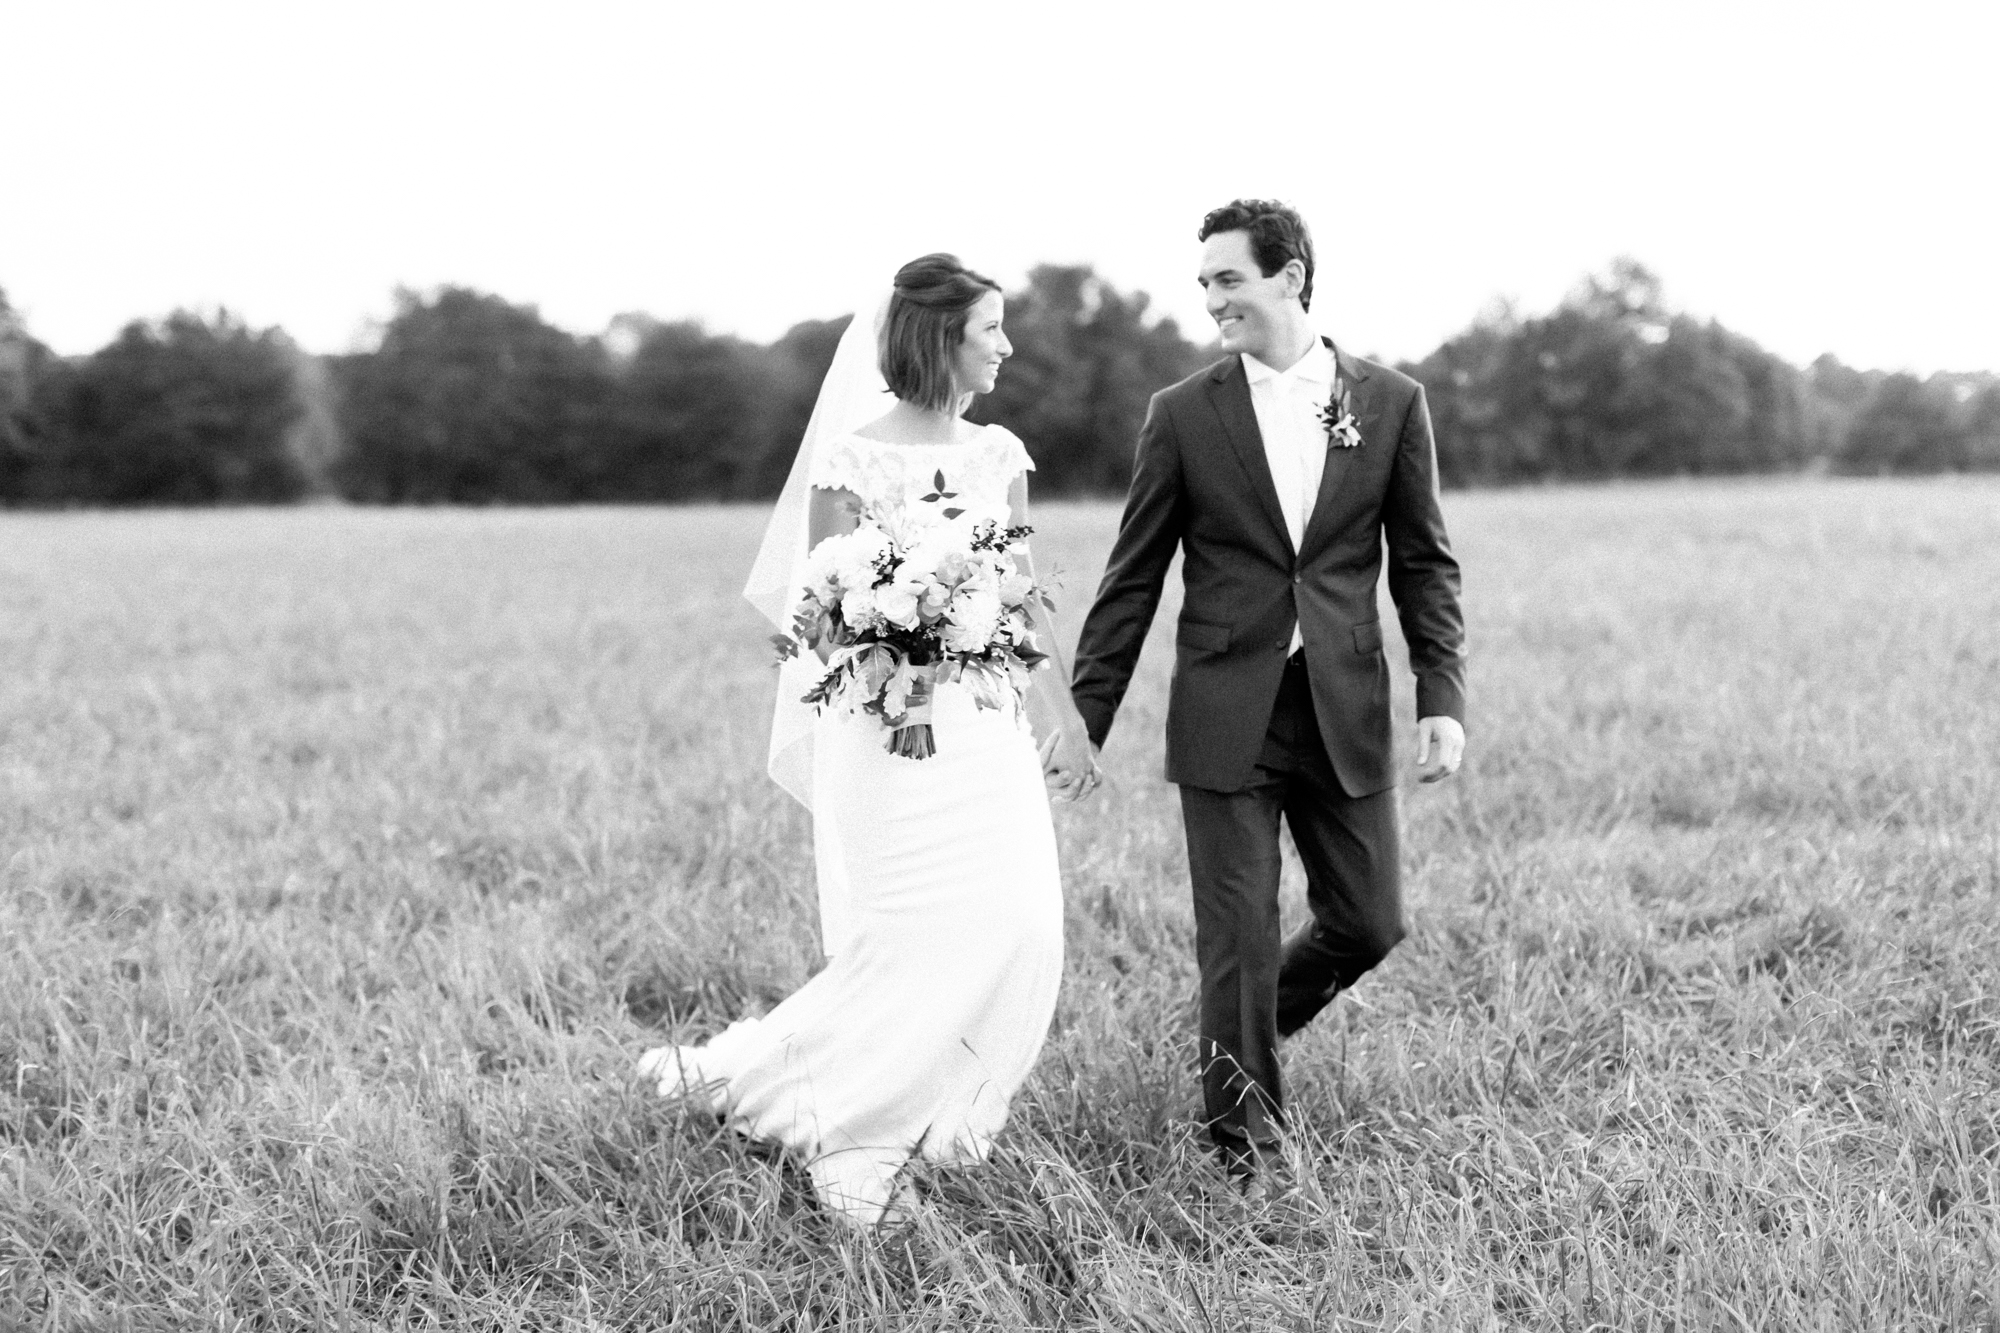 bride and groom walking on field in black and white